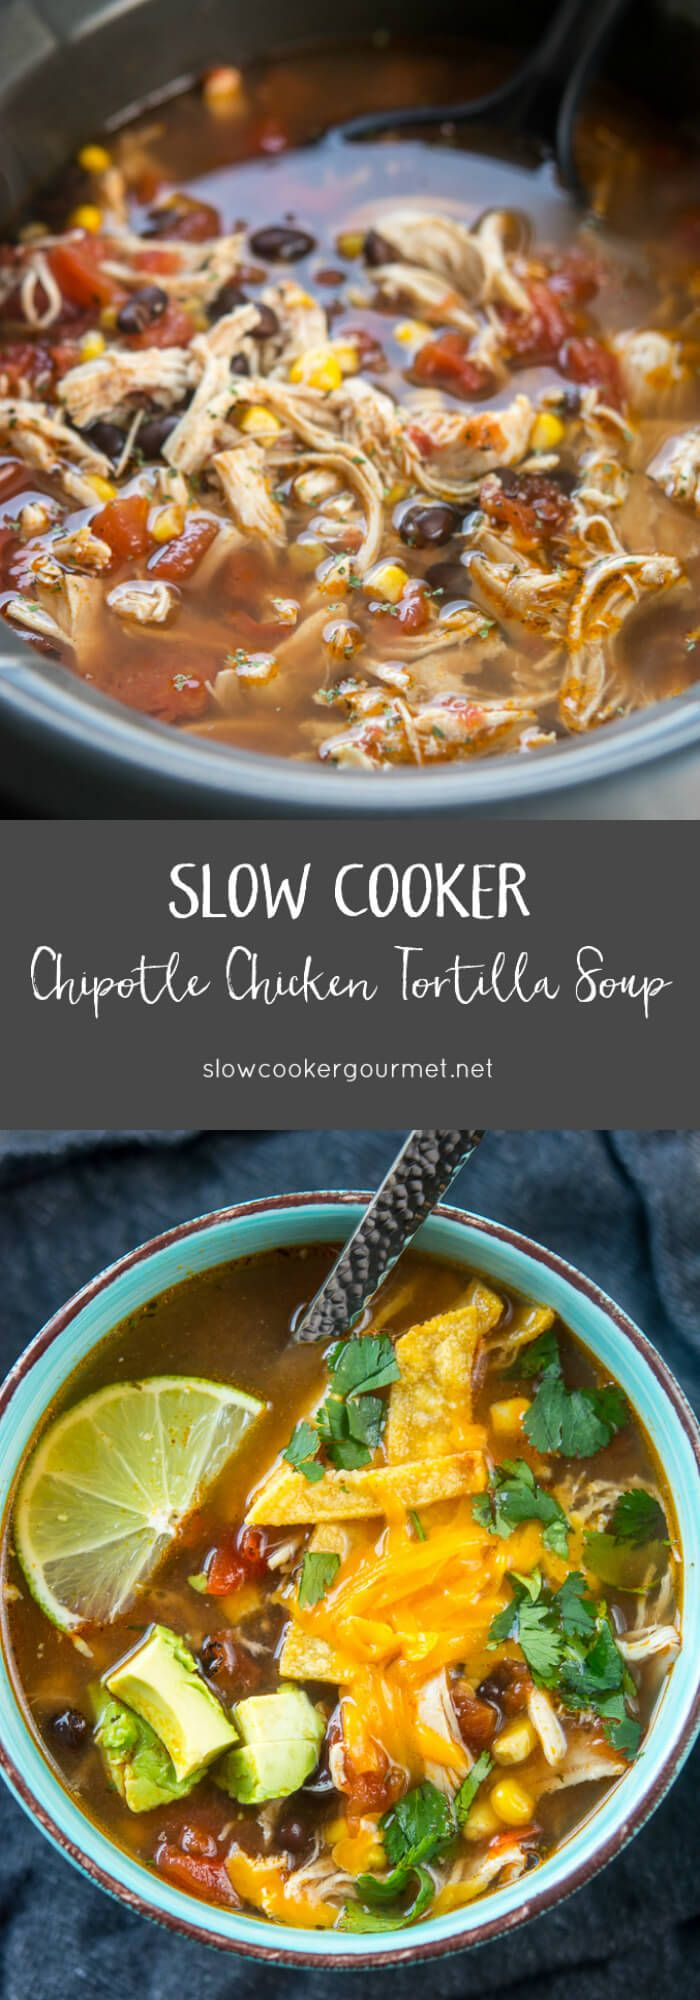 The most delicious version of chicken tortilla soup yet! And so simple in the slow cooker! Use quality ingredients and create a dinner you can be proud to serve your family!